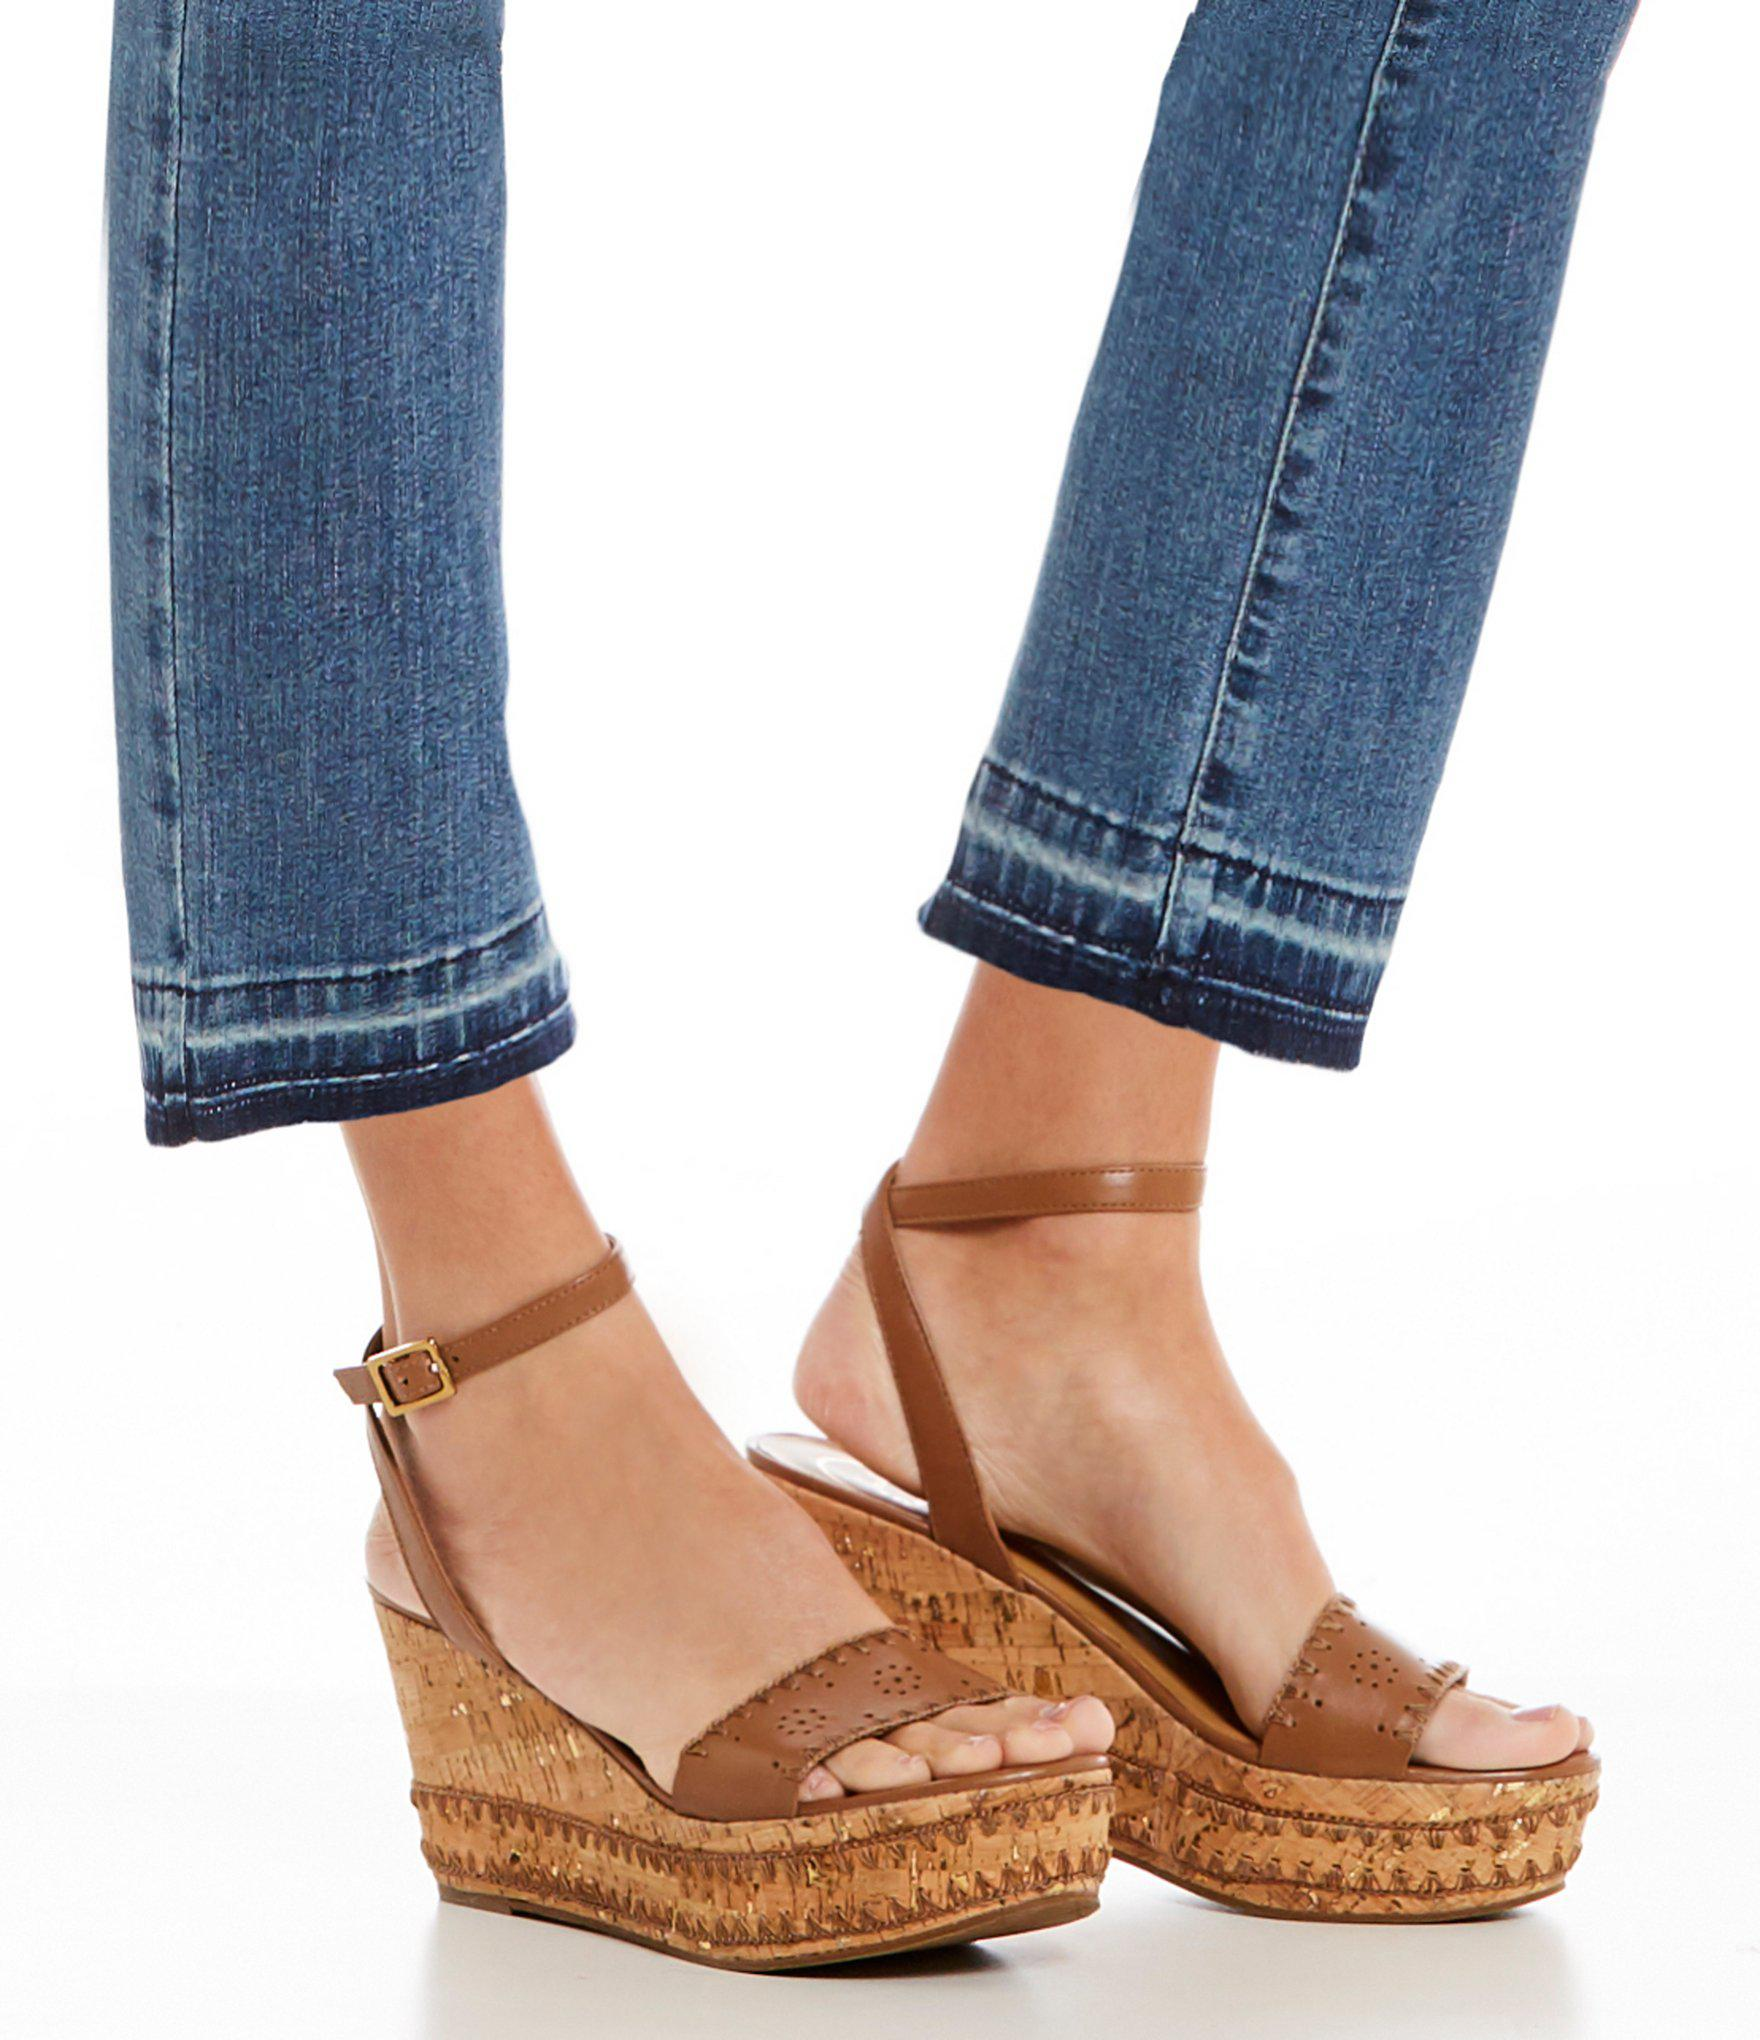 932cae63e4dd Lyst - Jack Rogers Lennon Whipstitch Detail Wedge Sandals in Brown